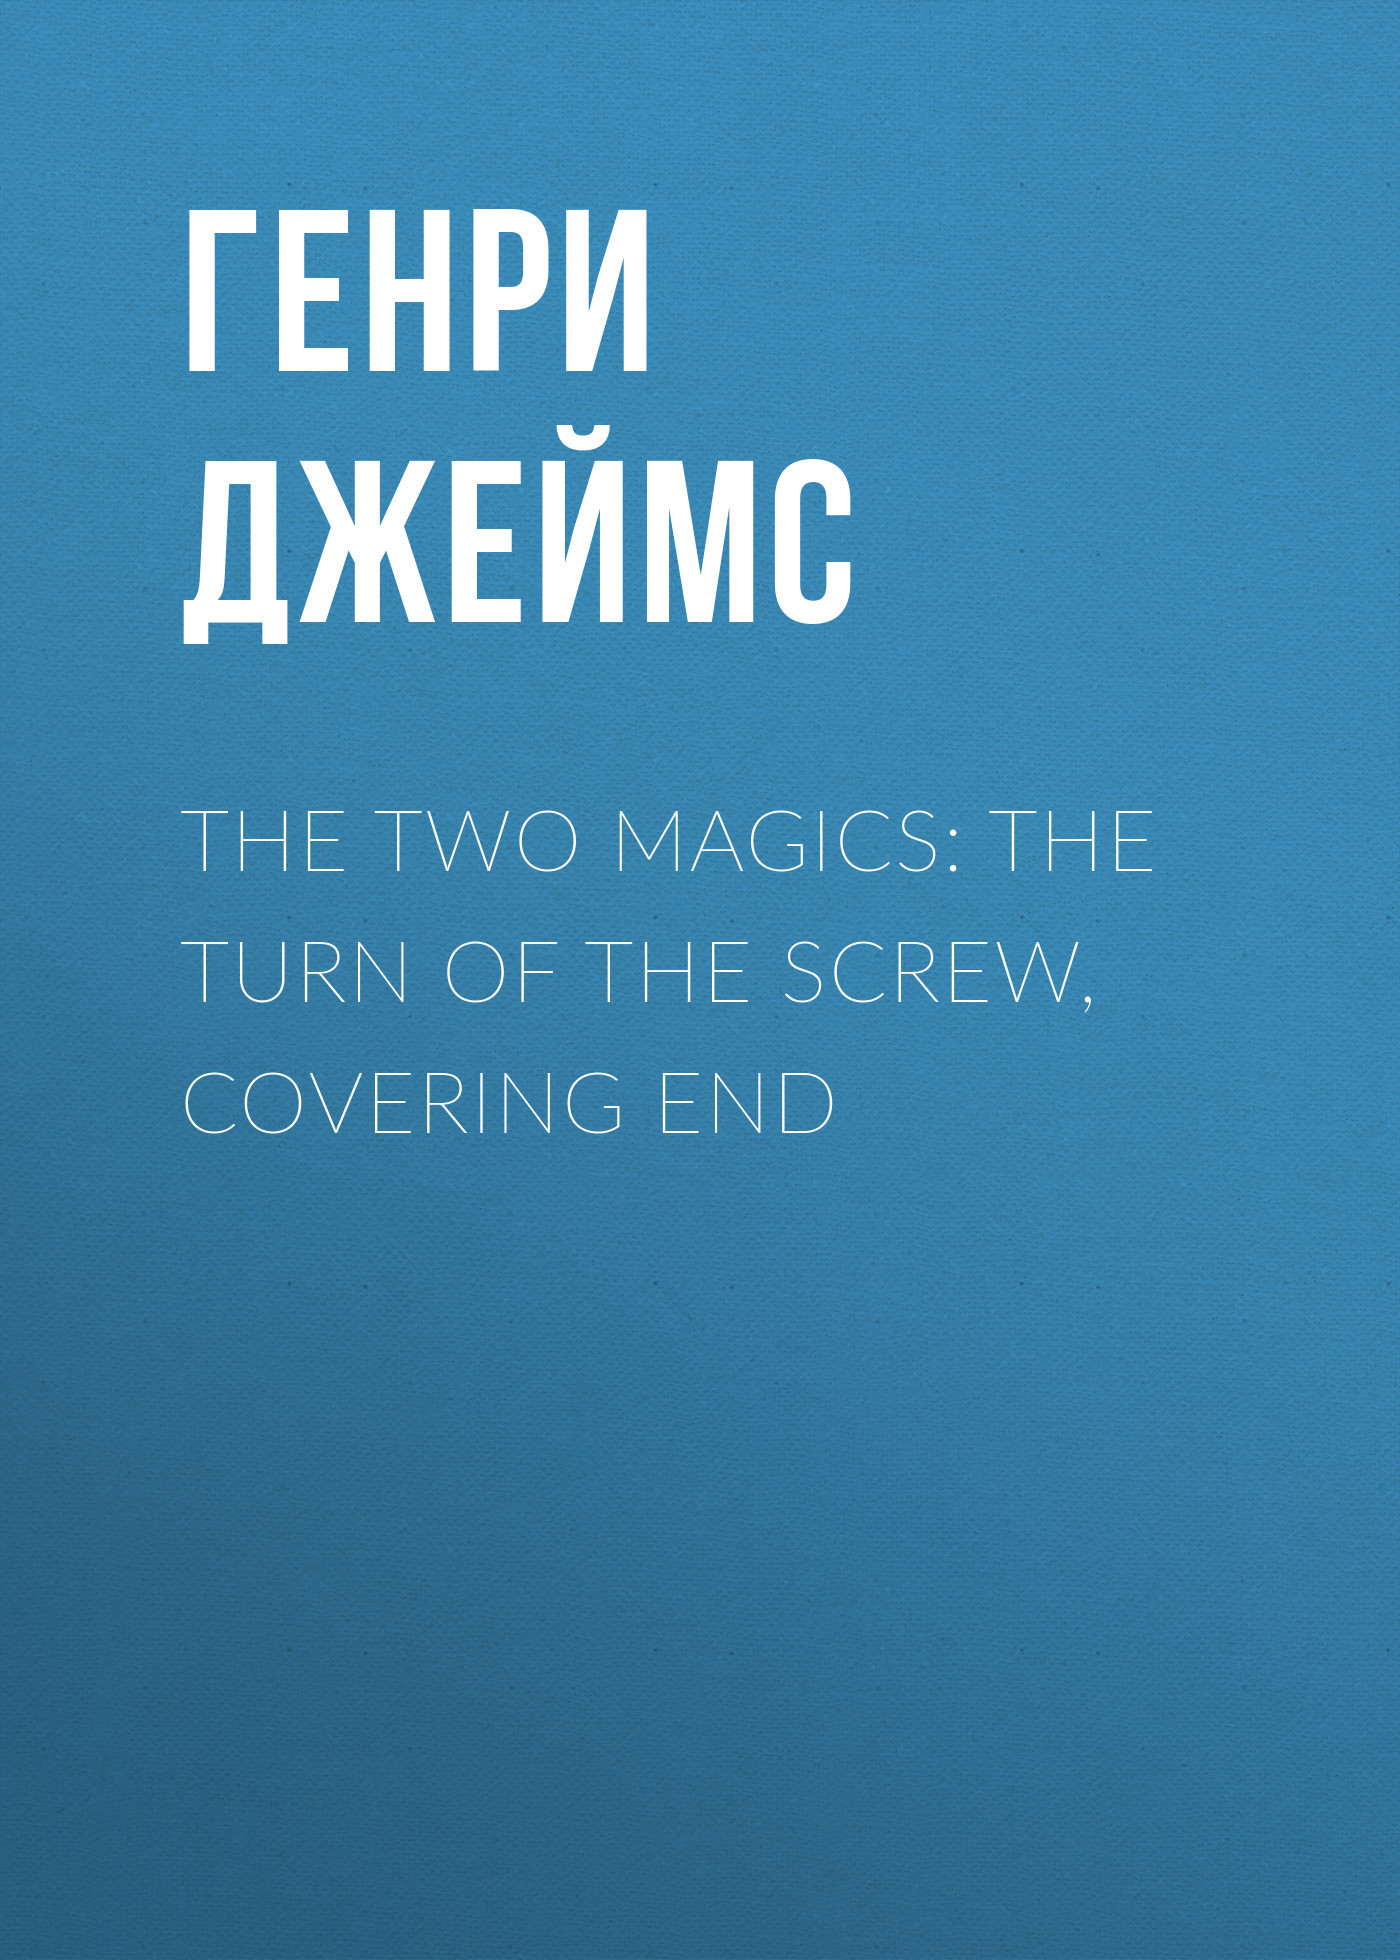 Генри Джеймс The Two Magics: The Turn of the Screw, Covering End sitemap html page 7 page 8 page 5